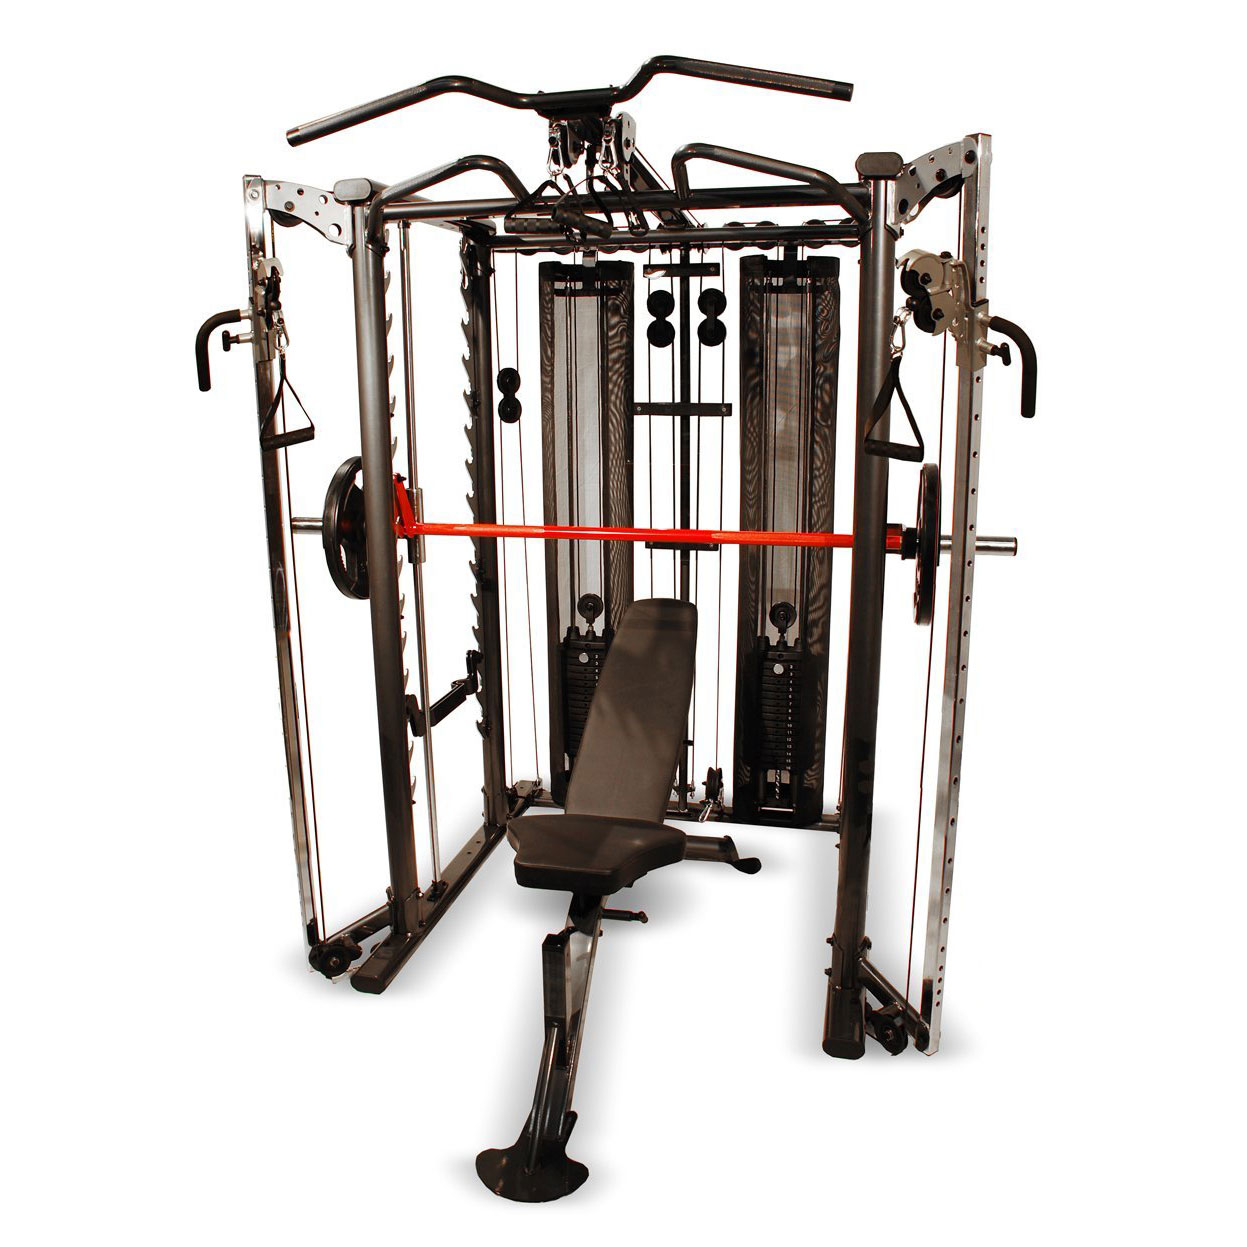 inspire smith machine